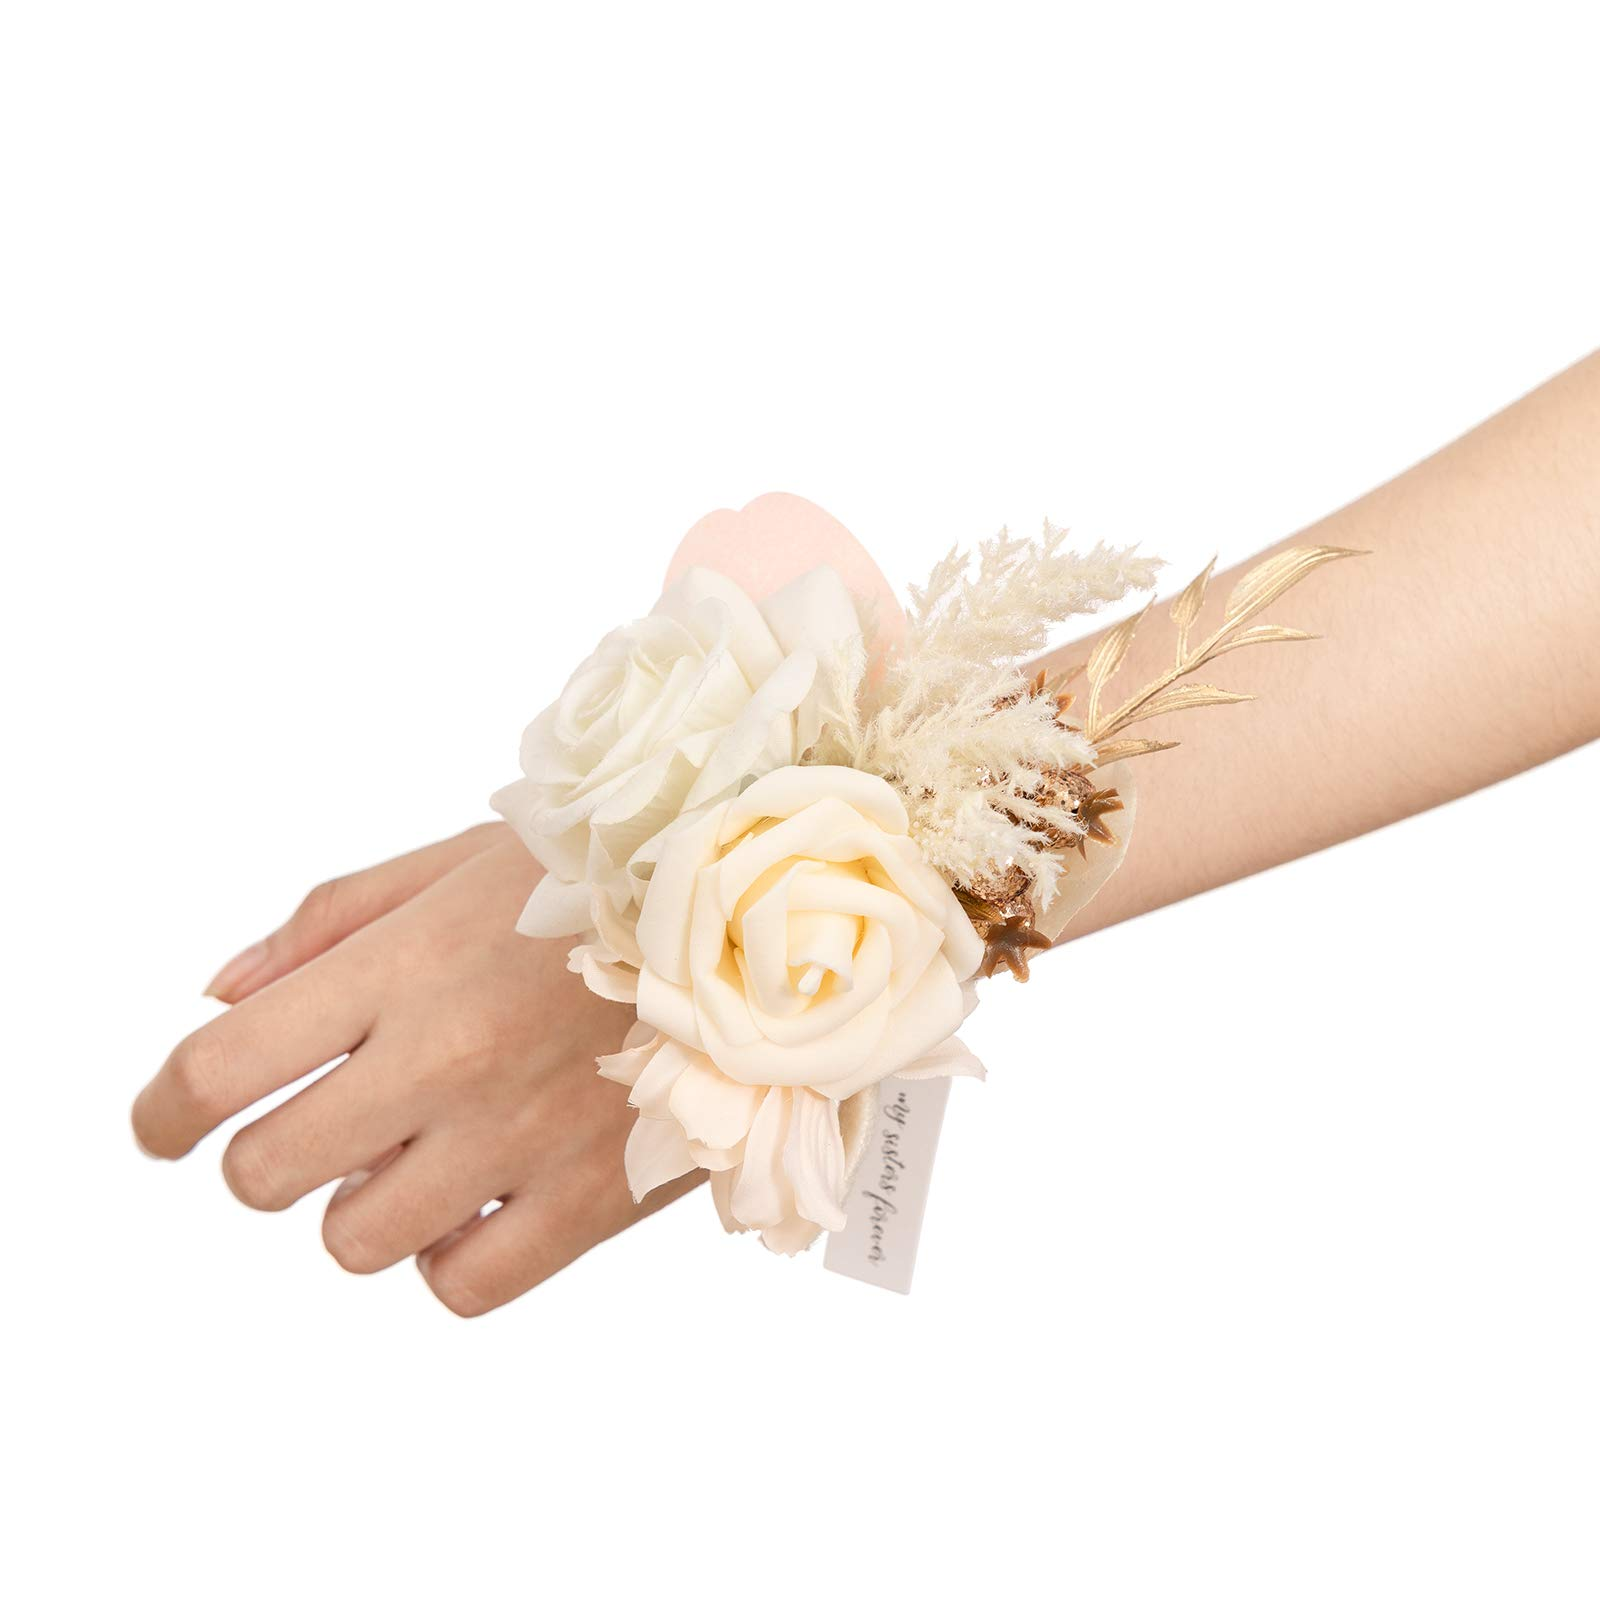 Ling's moment White & Beige Artificial Flowers Bridesmaid Wrist Corsage Bracelet, Set of 6, for French Rustic Vintage Wedding, Bridal Shower Party, Wedding Ceremony Anniversary, Corsage Ribbon Prom